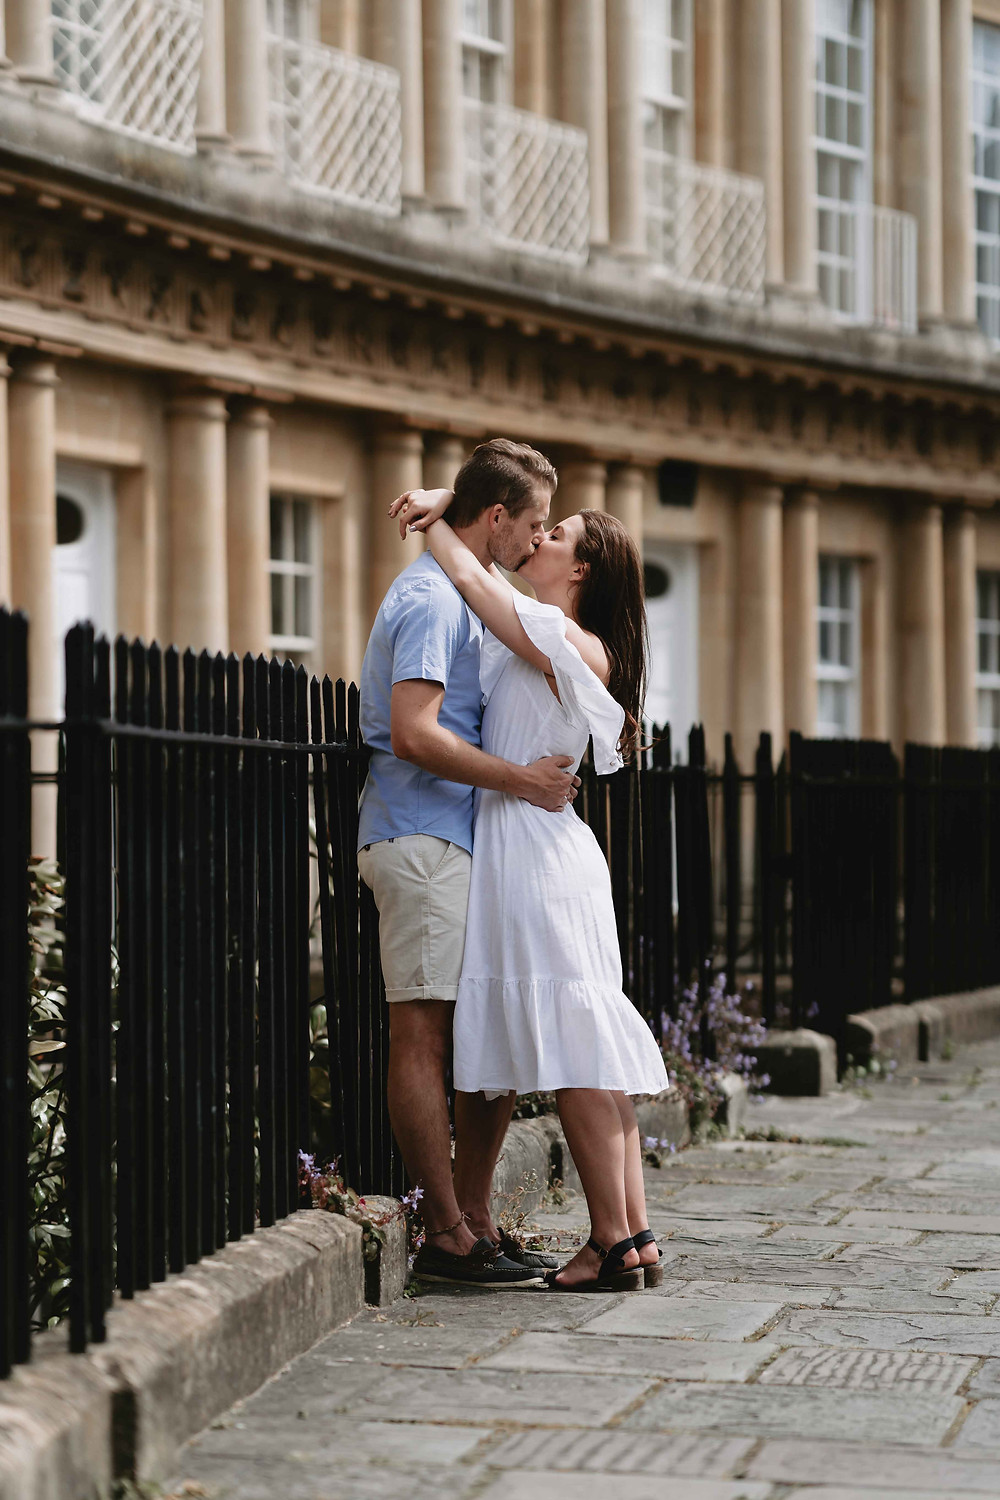 Pre-Wedding Engagement Photography the circus Bath, Somerset. By Award Winning Wedding Photographer Heather Bailey